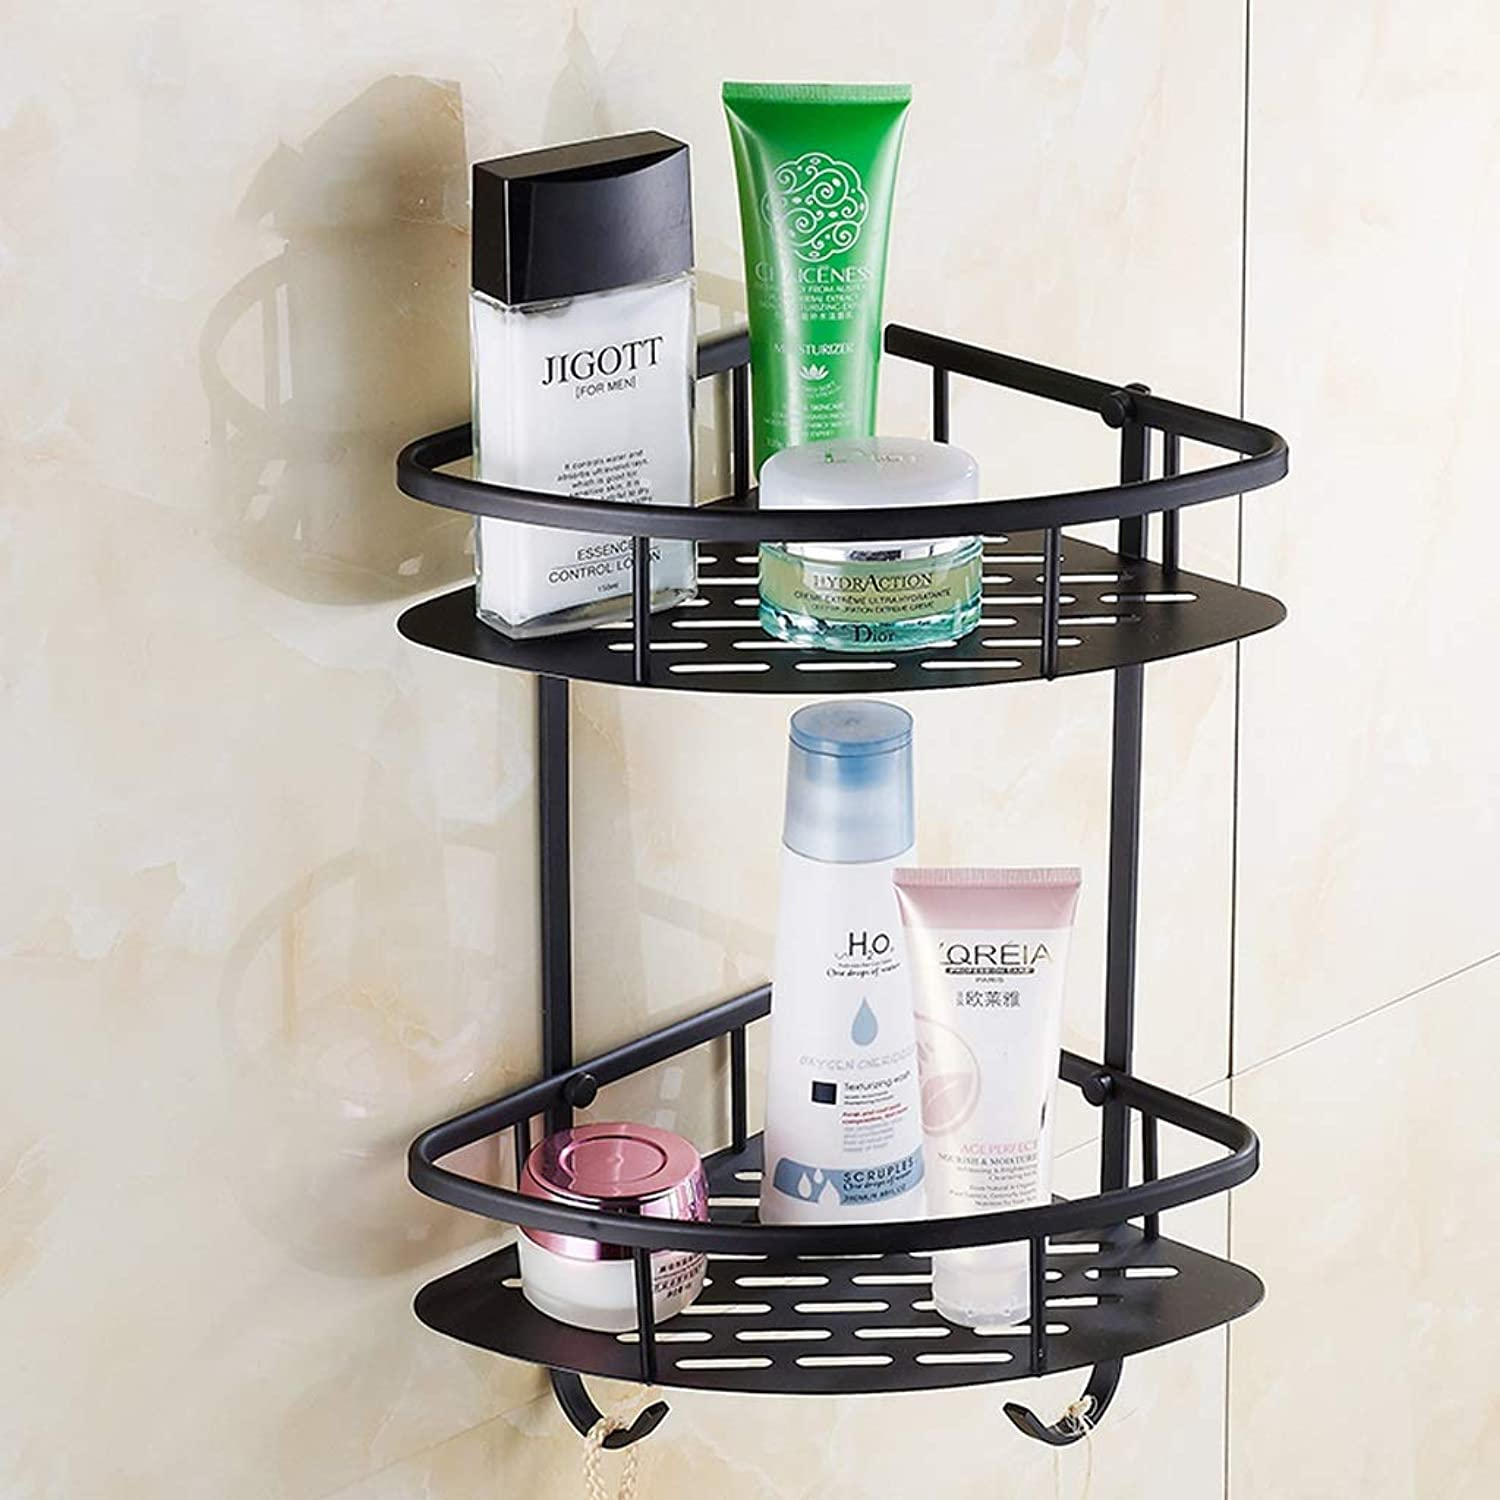 Rack- European Bathroom Shelf with Hook, Black Double Corner Stand, Triangle Basket Rack, Kitchen Storage Rack